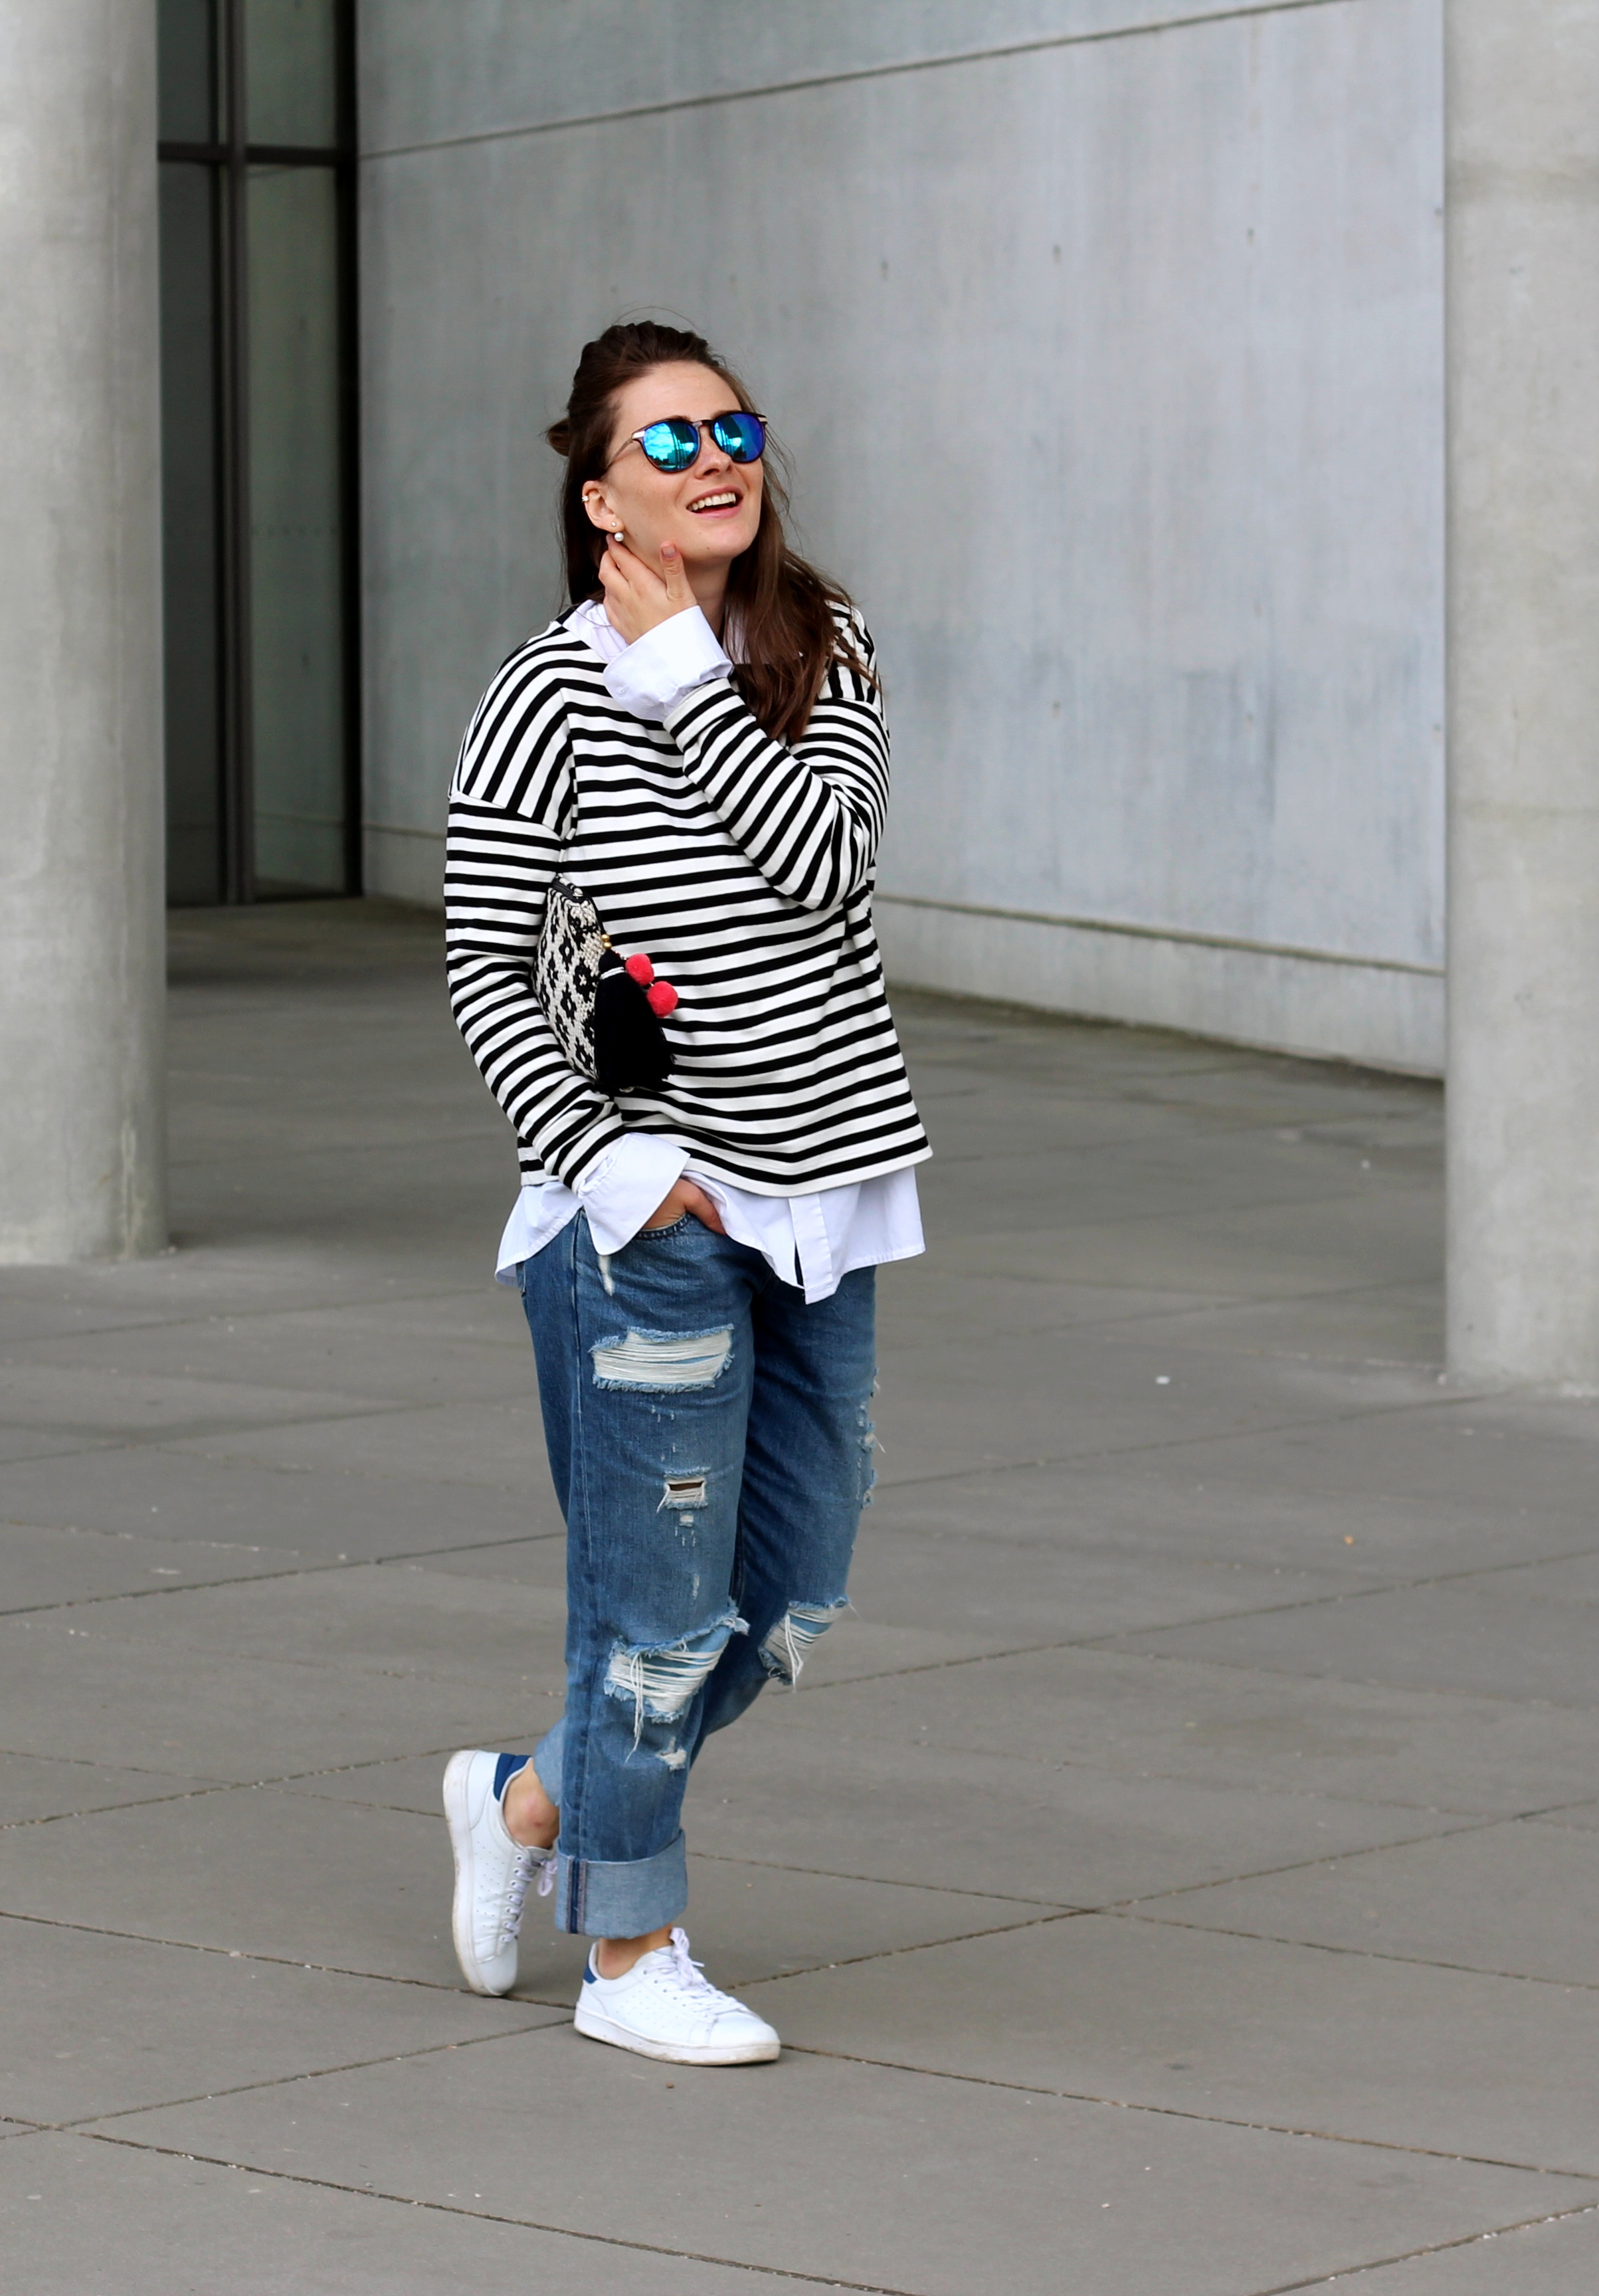 annaporter-classic-outfit-look-jeans-stripes-white-sneakers-asos-mango-clutch-2